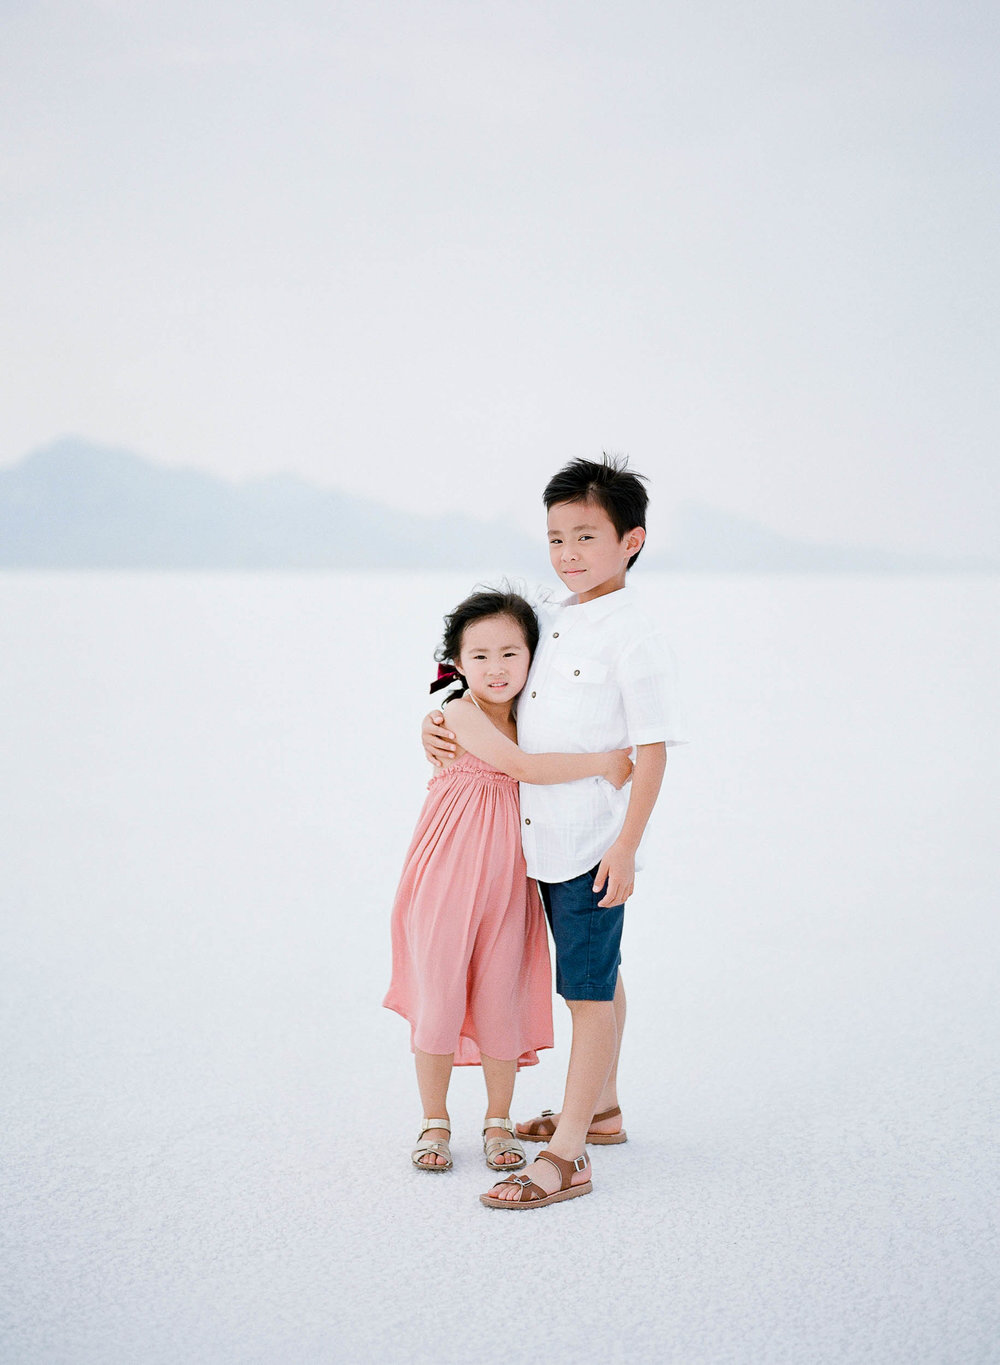 070918_Sandy A La Mode_Family_Utah Salt Flats_Buena Lane Photography_F400_58.jpg